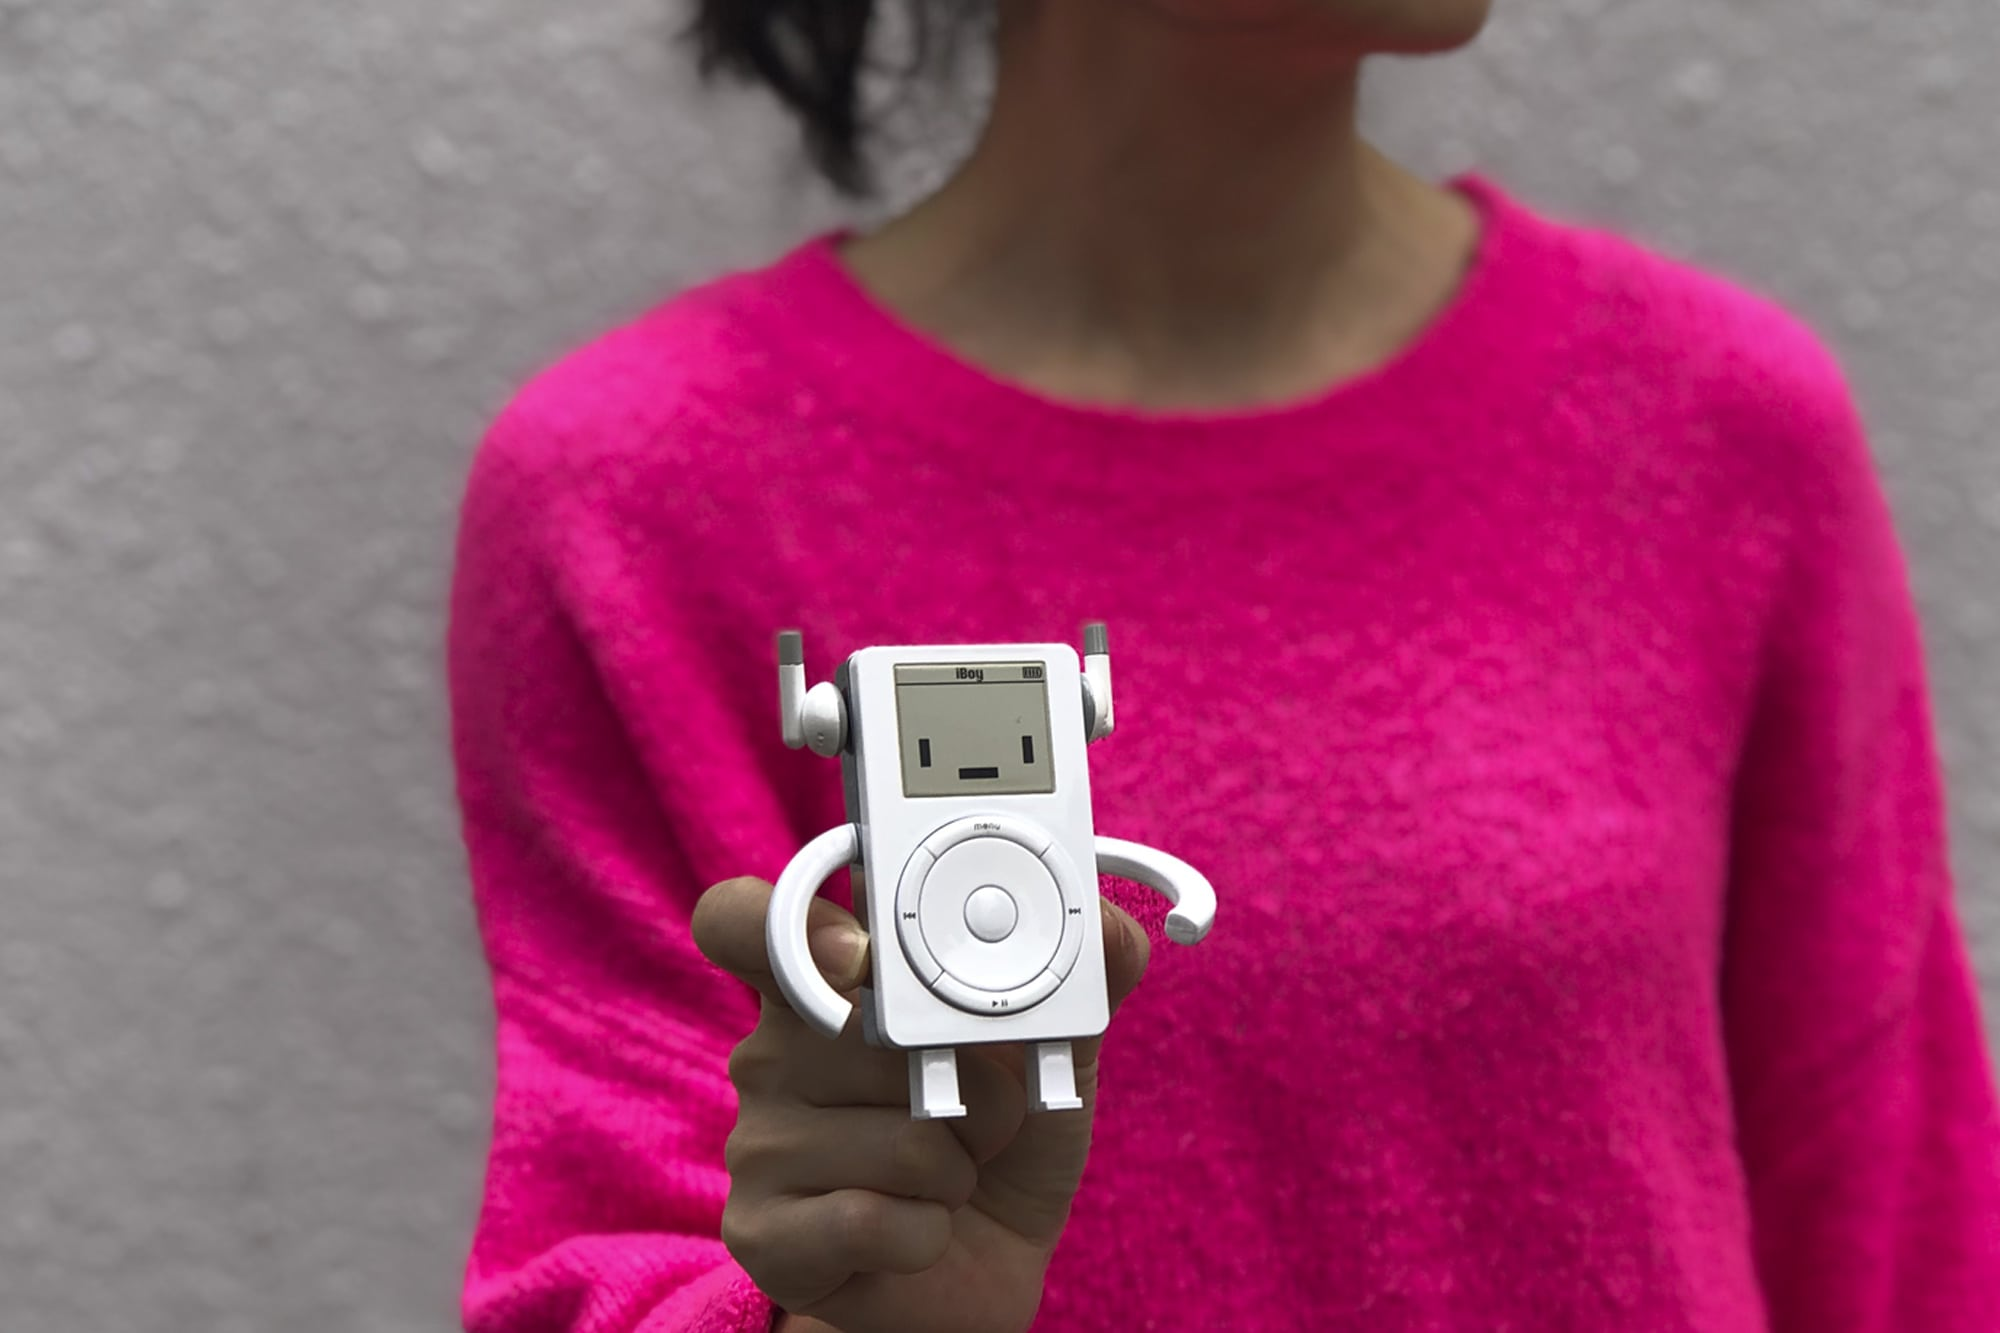 iBoy iPod toy by Philip Lee is just the right size.